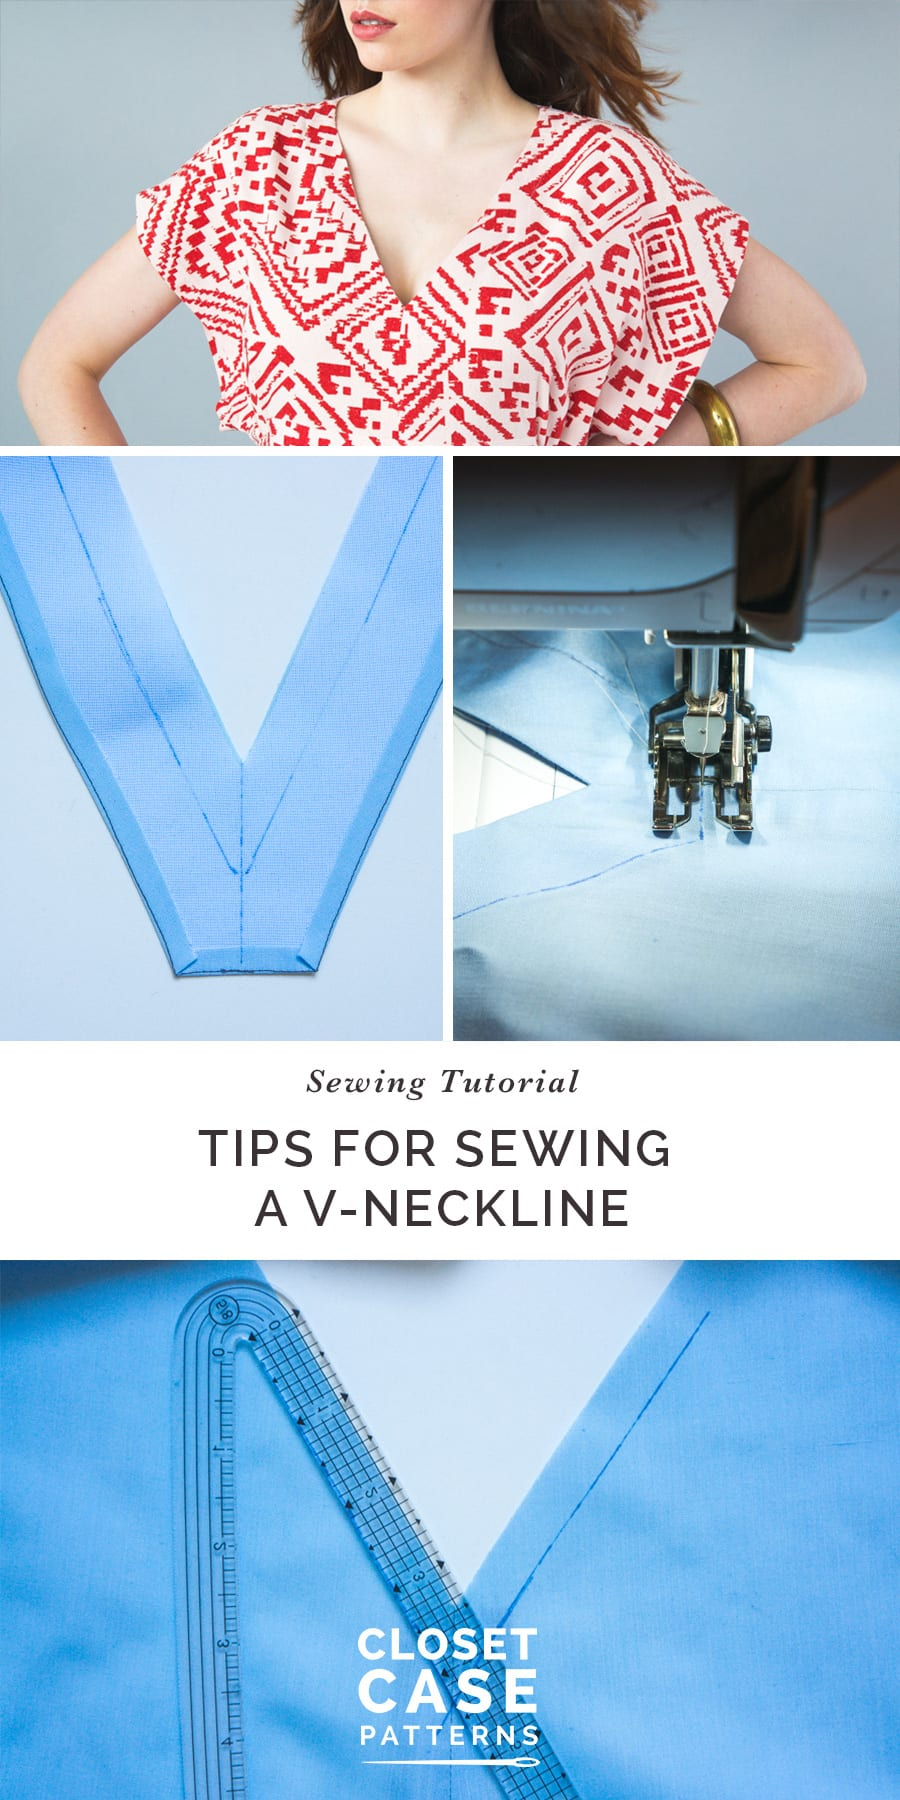 A tutorial with tips for how to sew a V-Neckline // Charlie Caftan